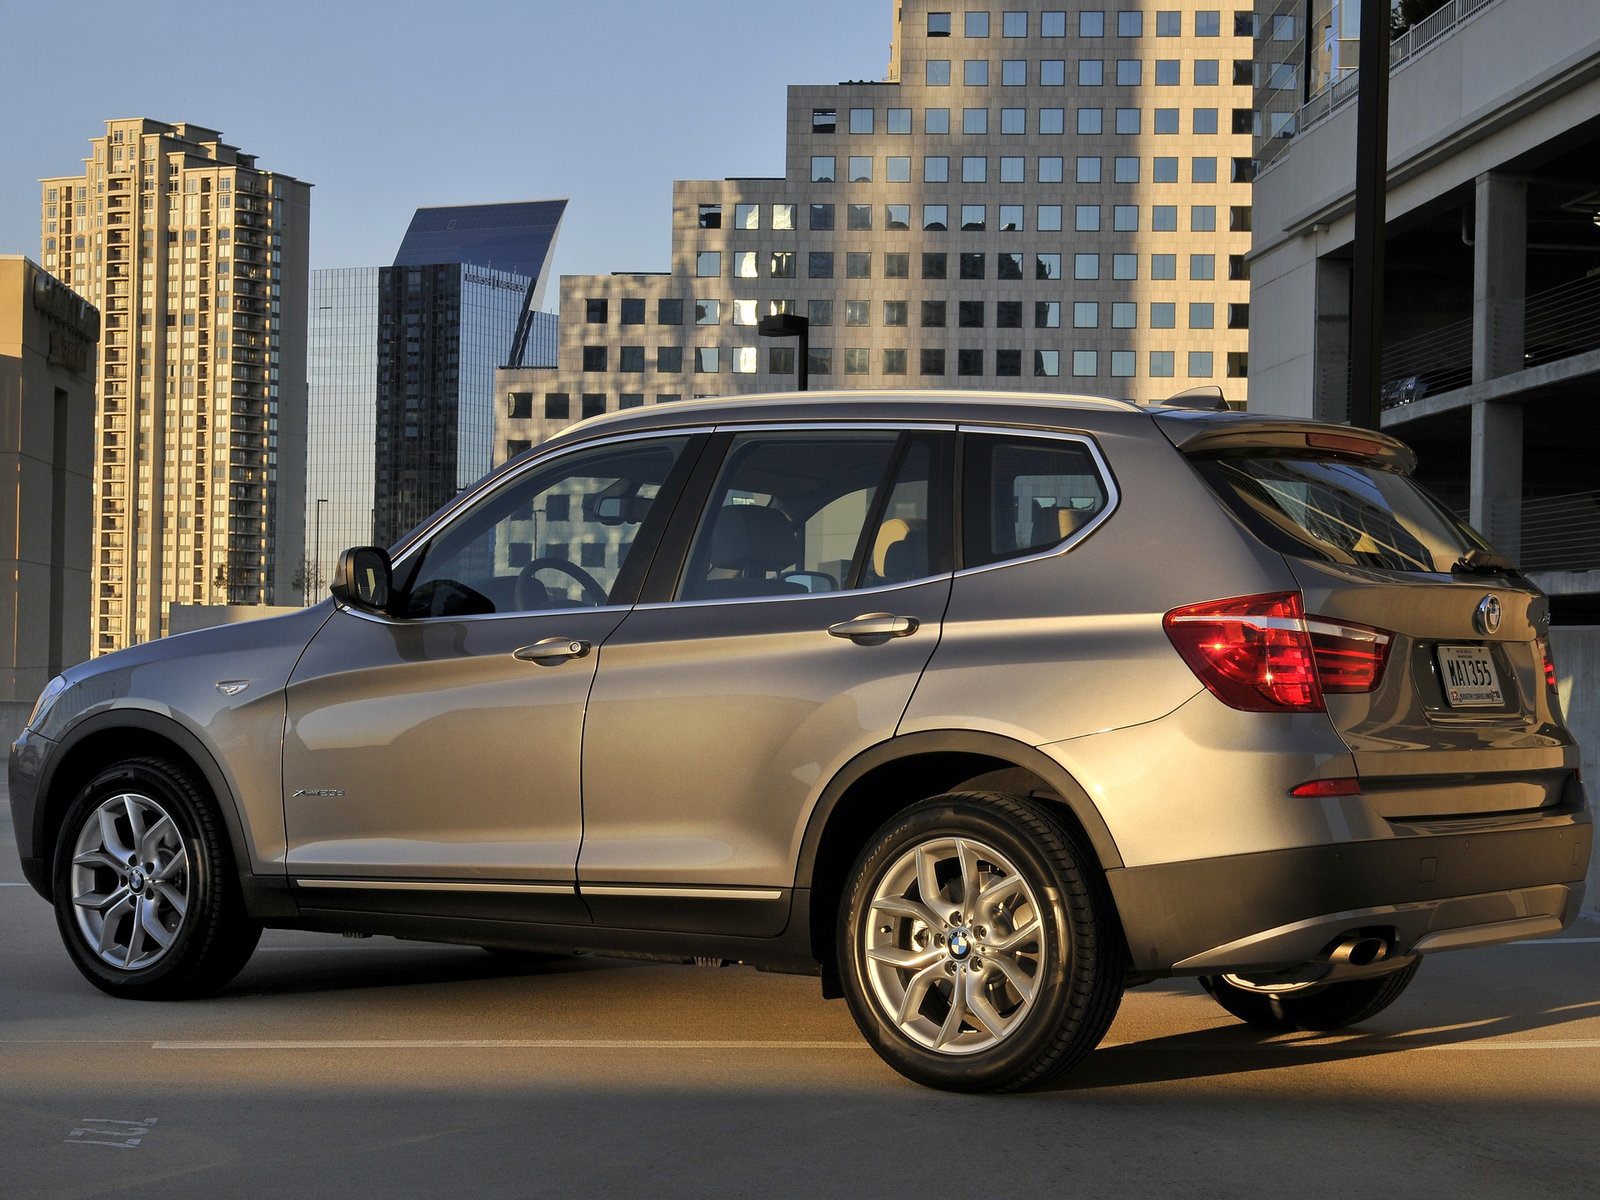 BMW X3 xDrive20d 2011 photo - 5